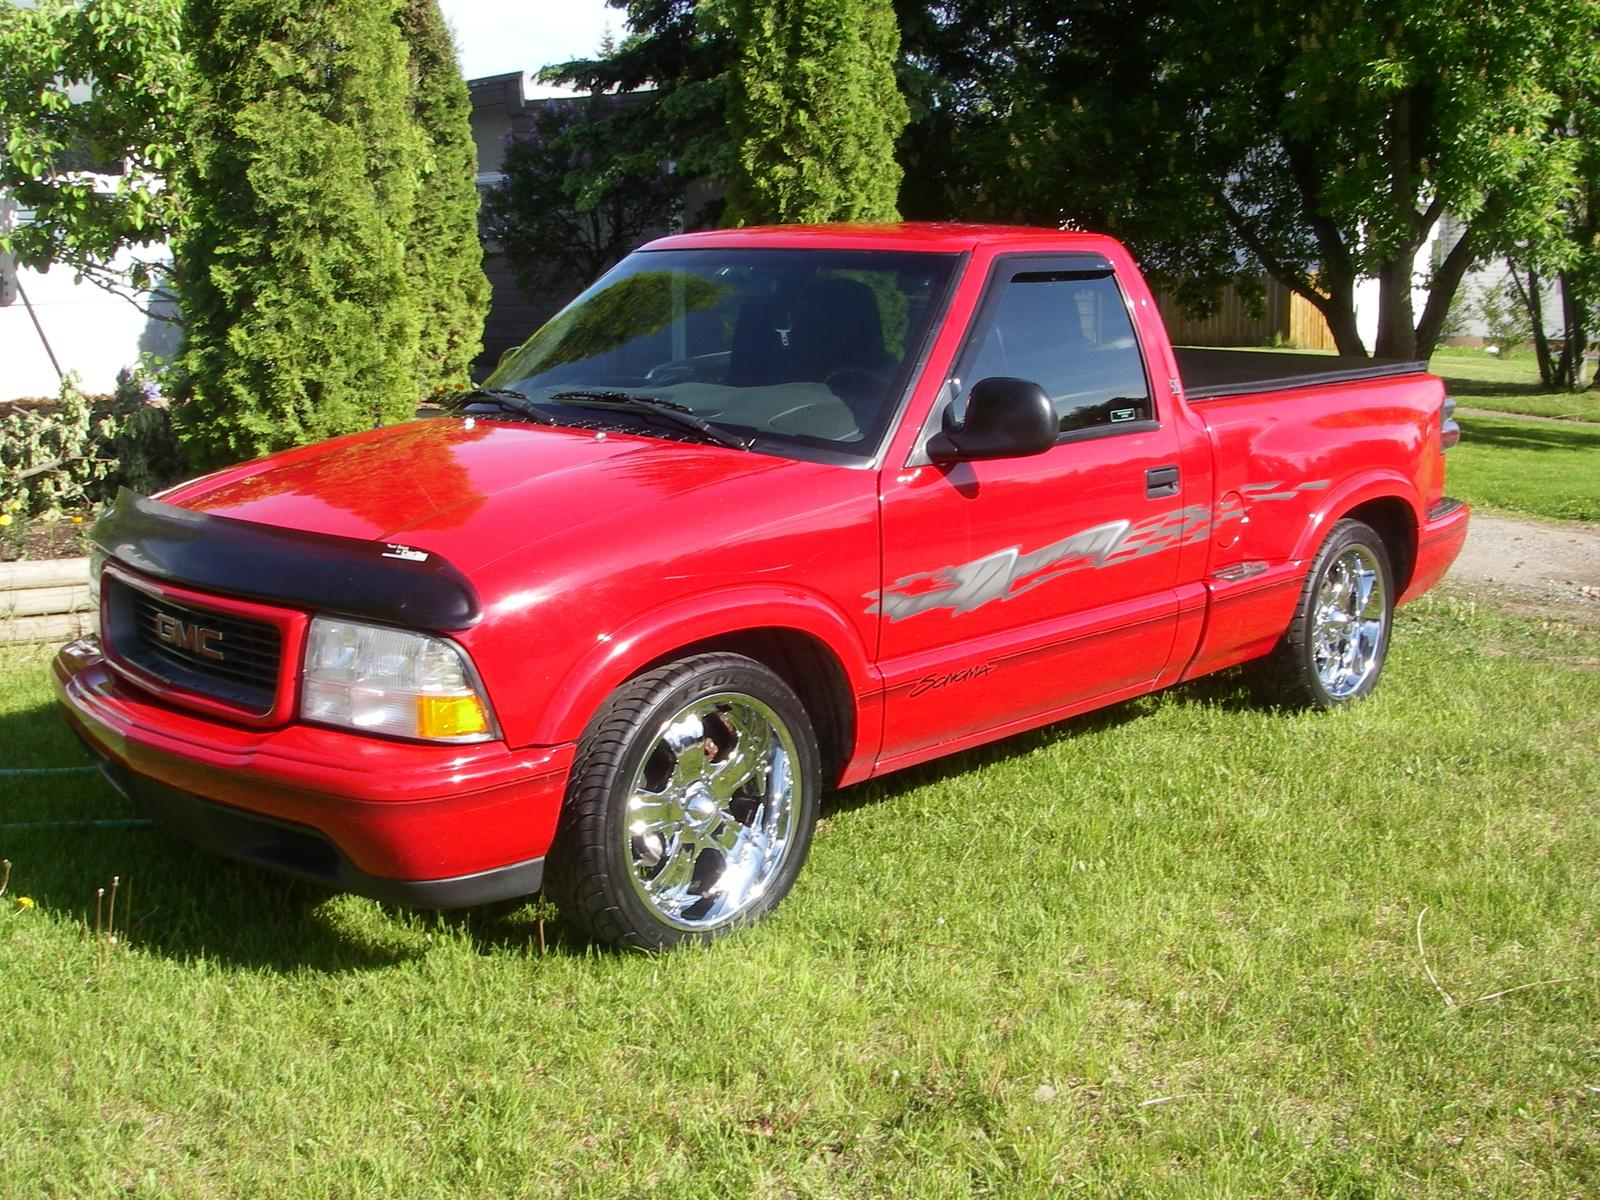 1998 gmc sonoma information and photos zombiedrive. Black Bedroom Furniture Sets. Home Design Ideas